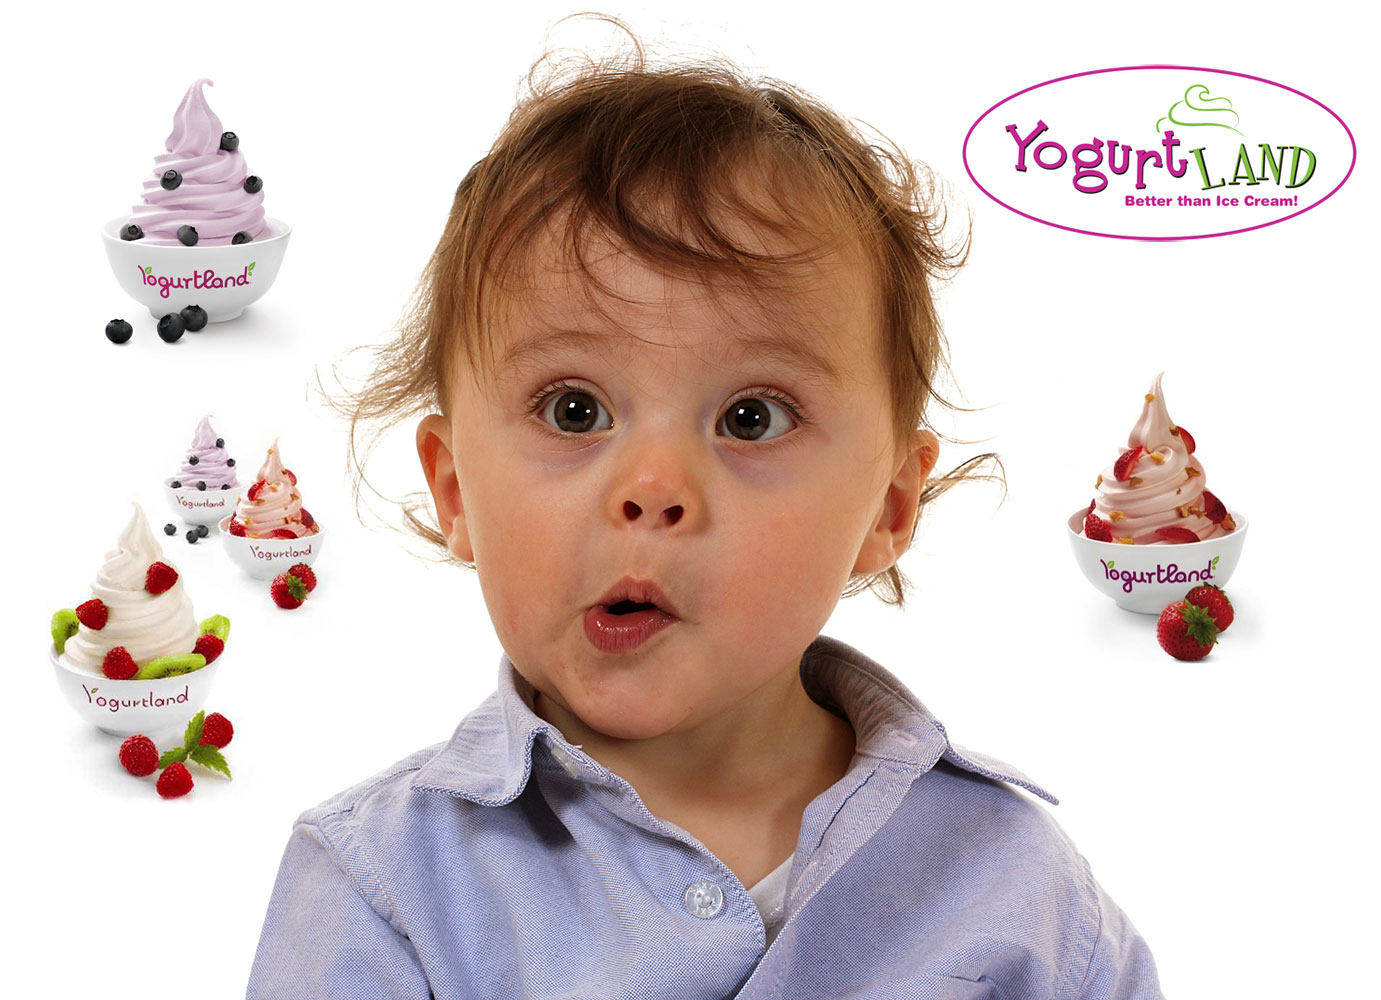 frozen, yogurt, advertisement, child, funny